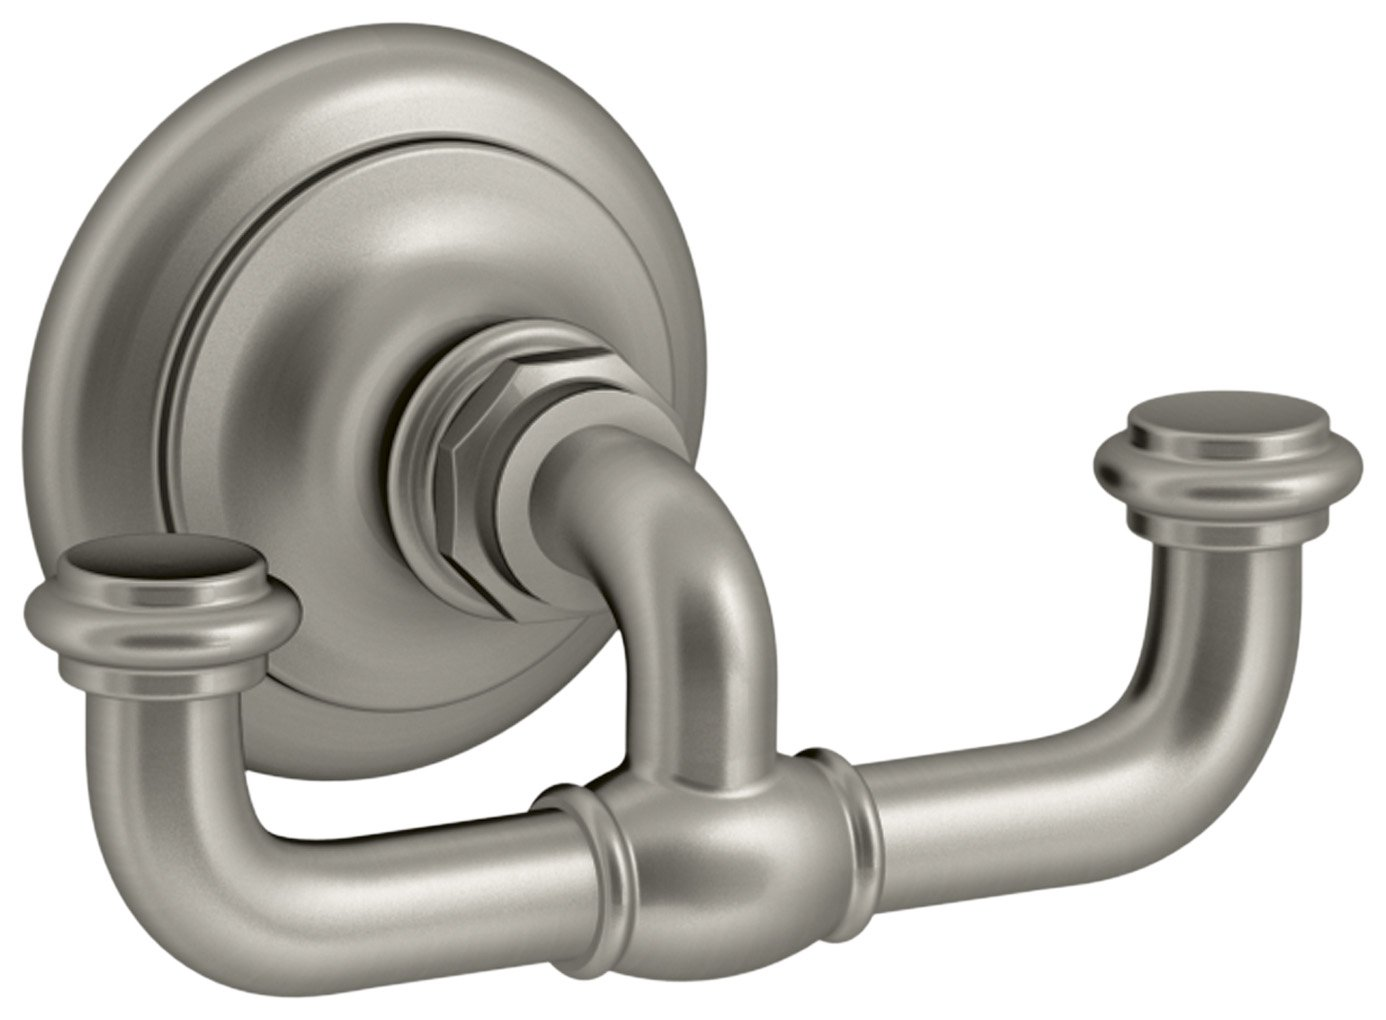 KOHLER K-72572-BN Artifacts Double robe hook, Vibrant Brushed Nickel